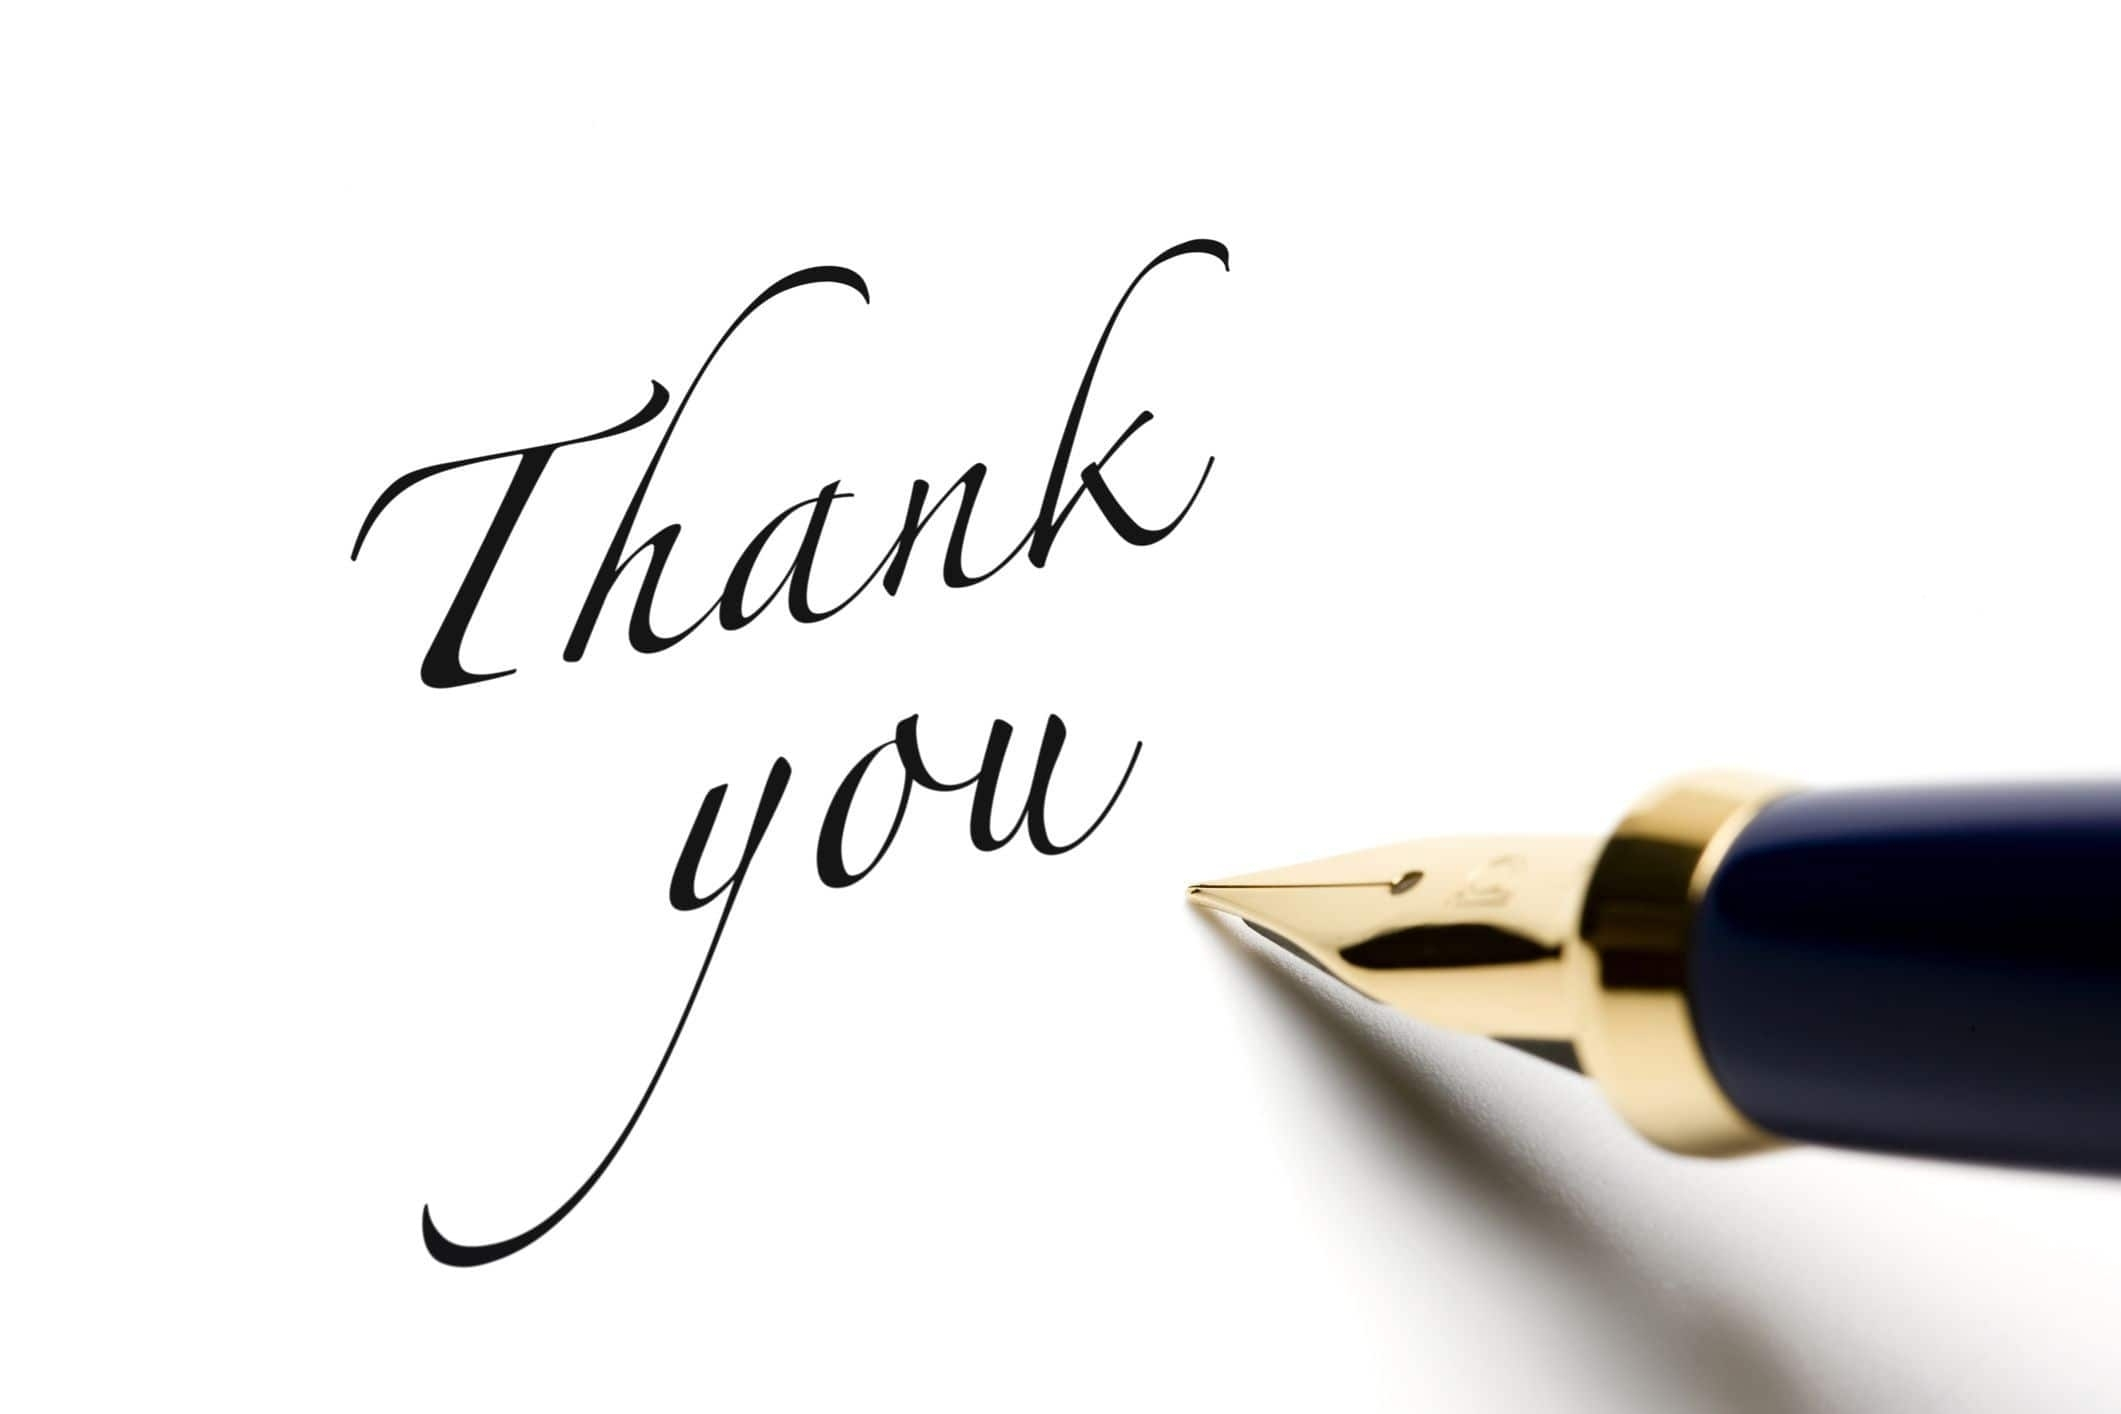 Title Thank You Hd Wallpaper Images Pictures Photos 2018 Dimension 2121 X 1414 File Type JPG JPEG